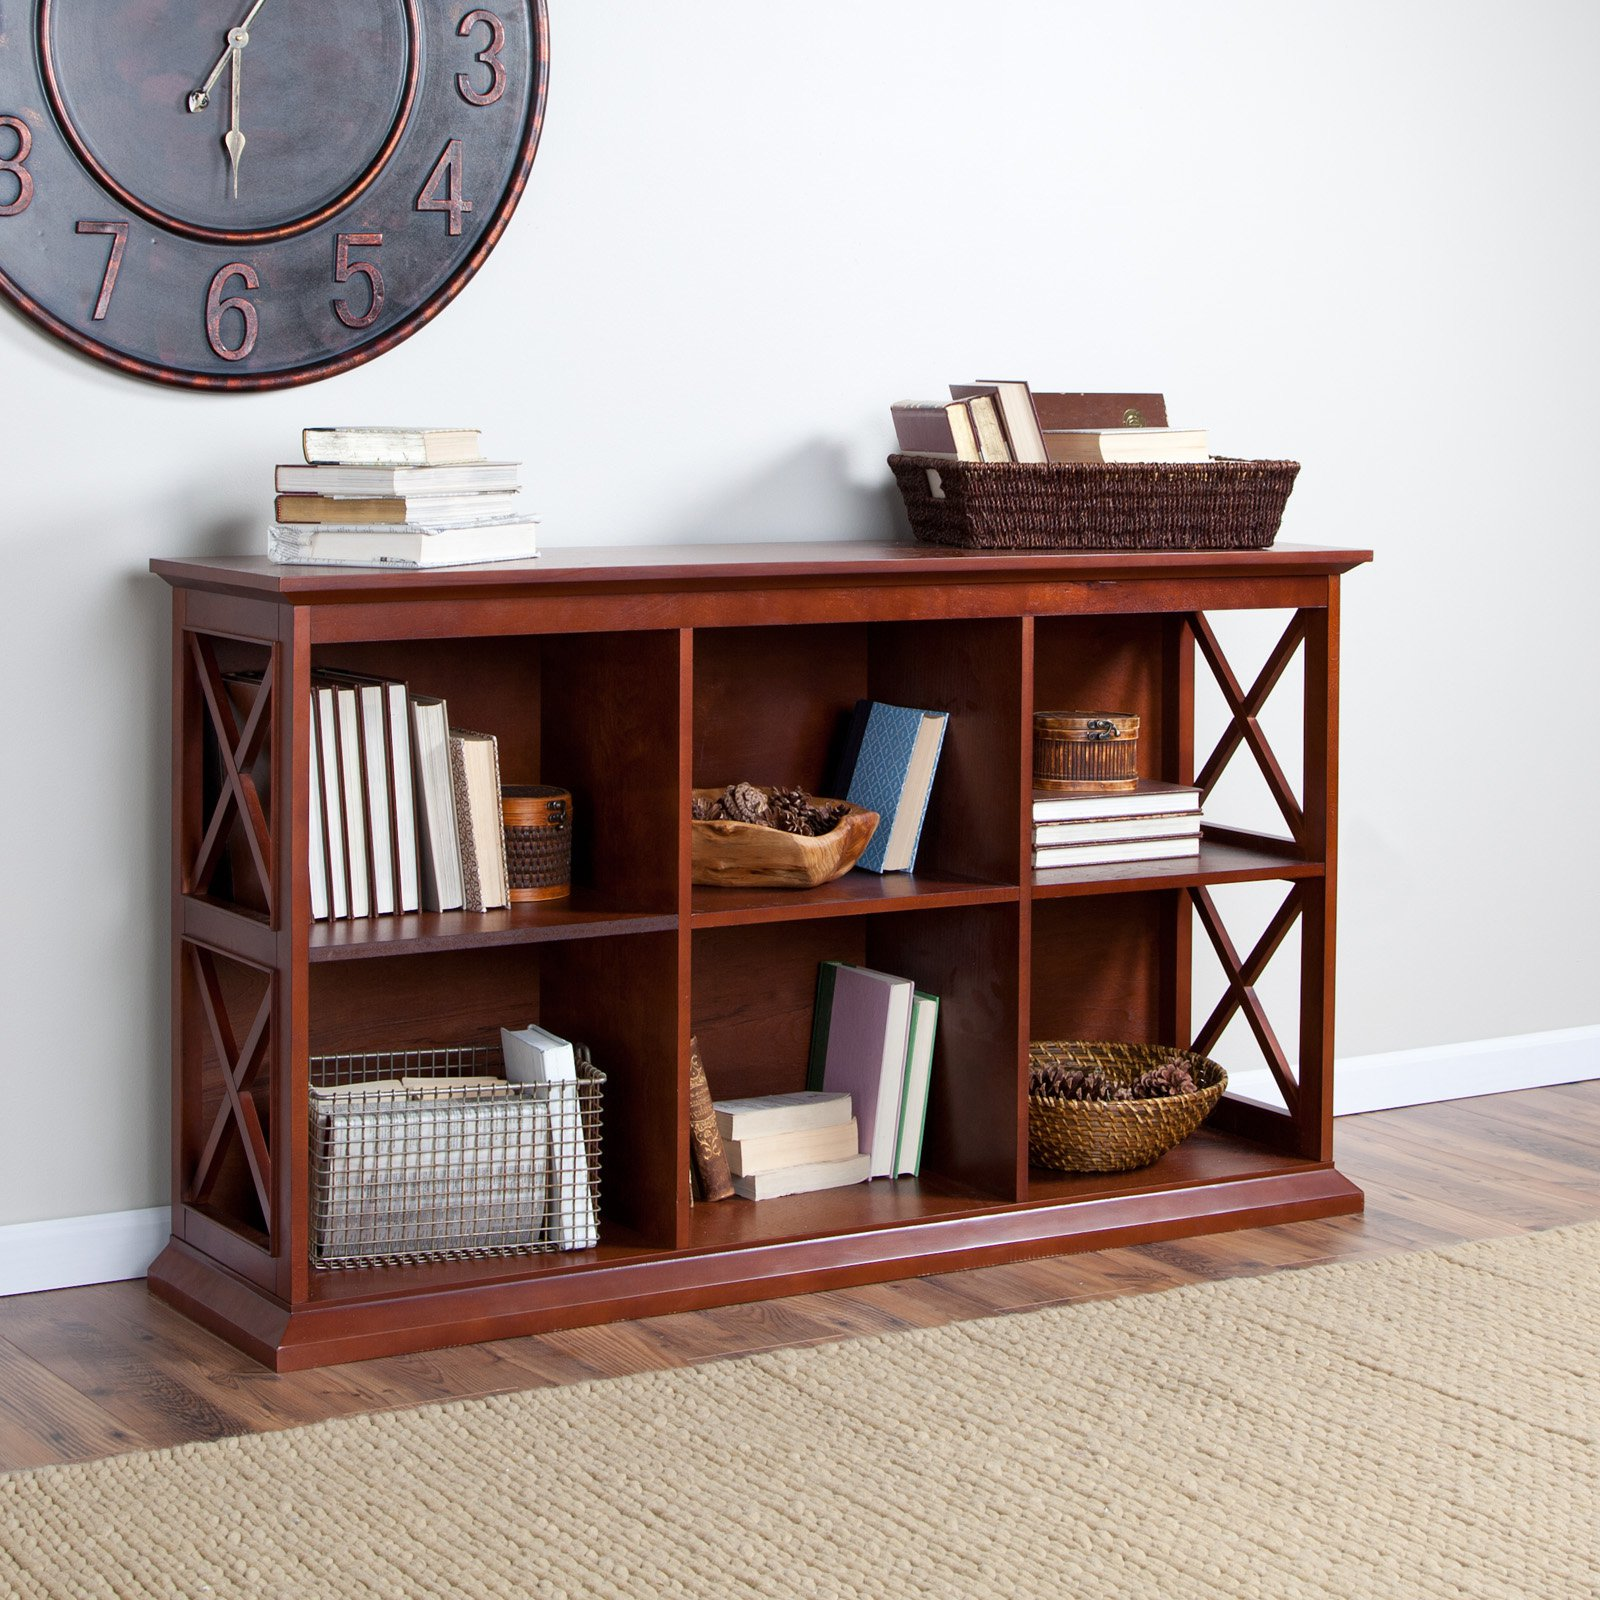 console tv stand wood bookcase shelves storage pin display with espresso bookcases